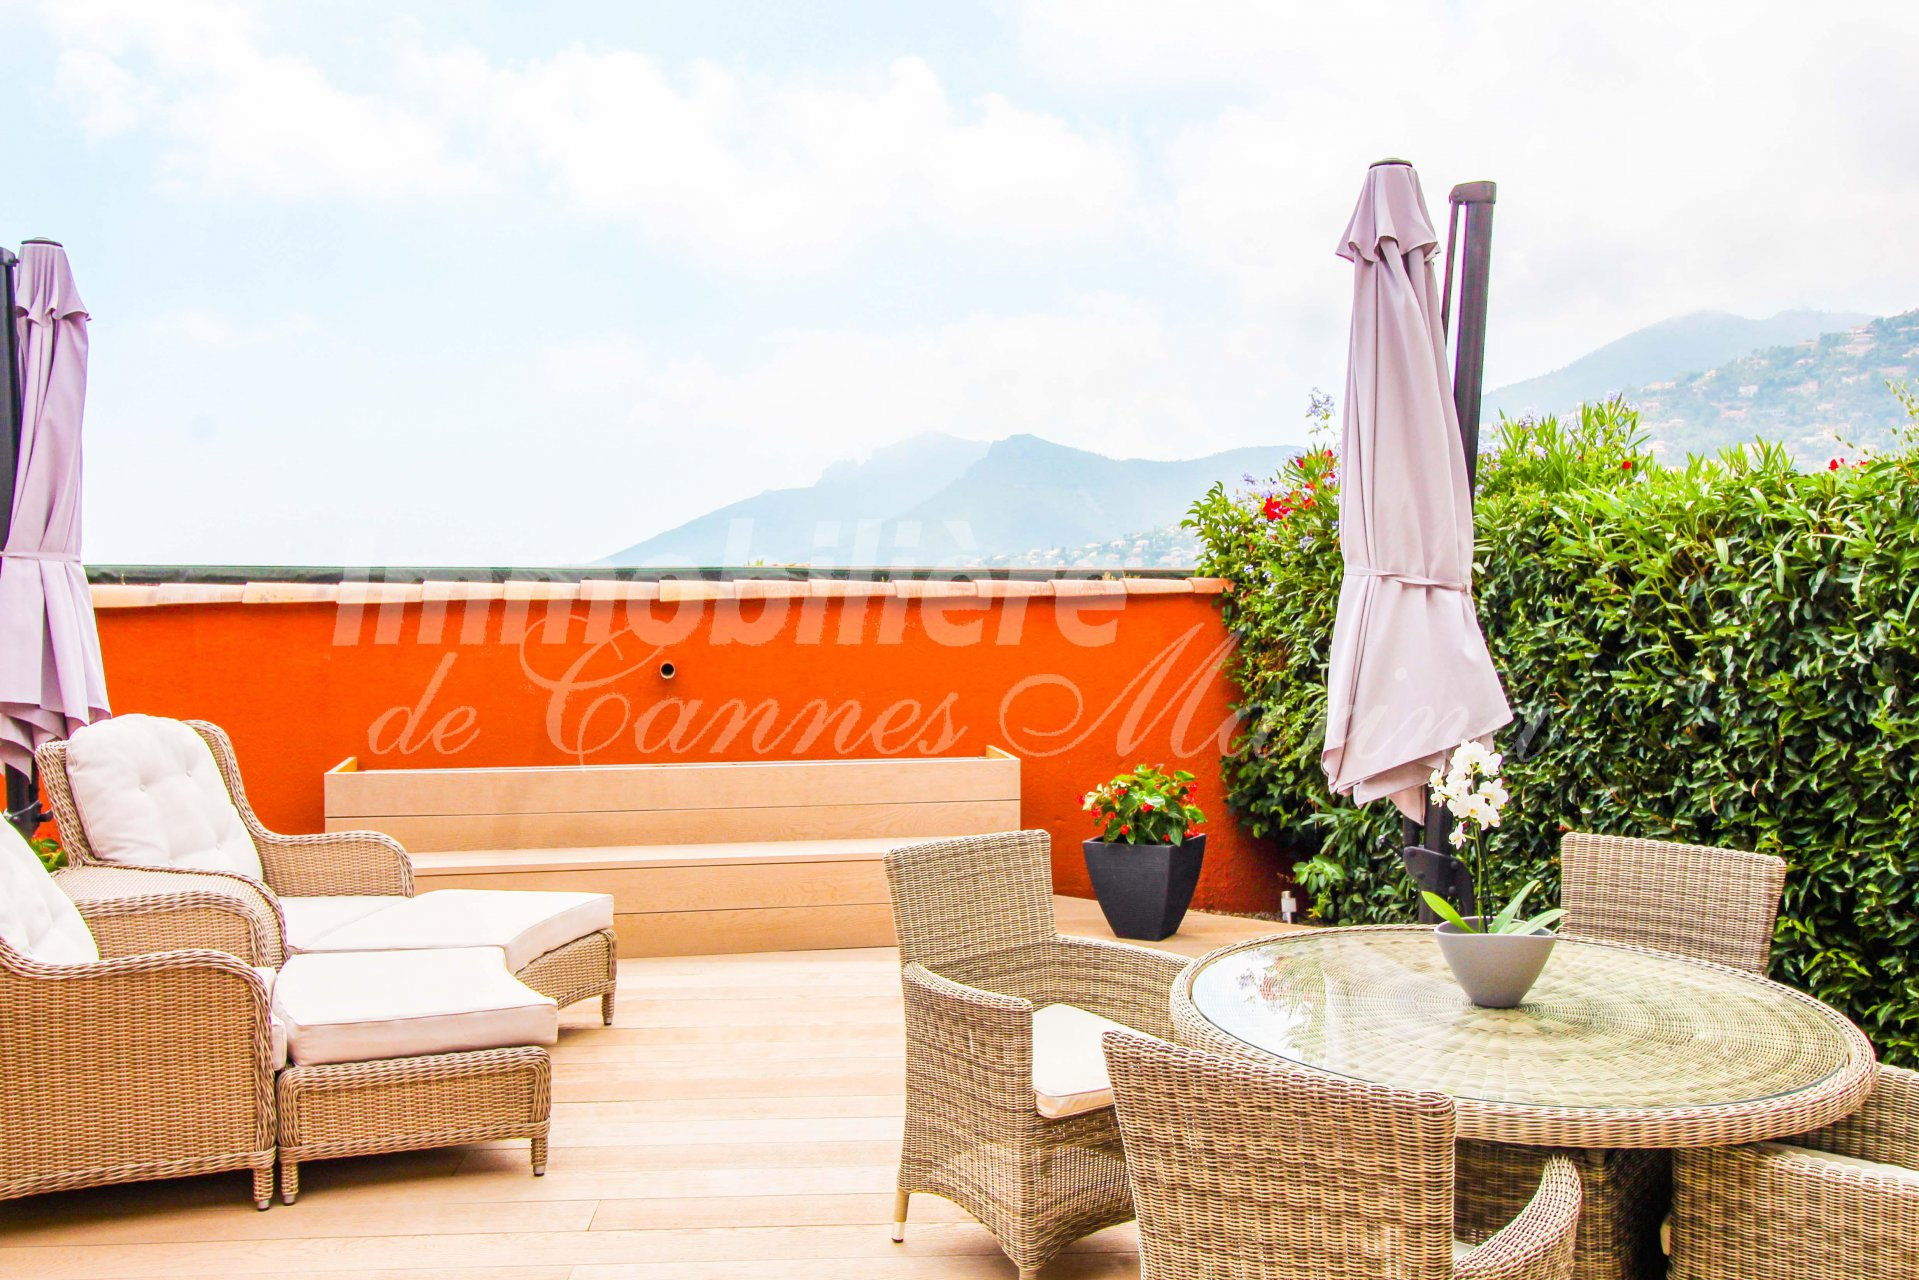 Magnificent sea view - Large garden terrace - Pool